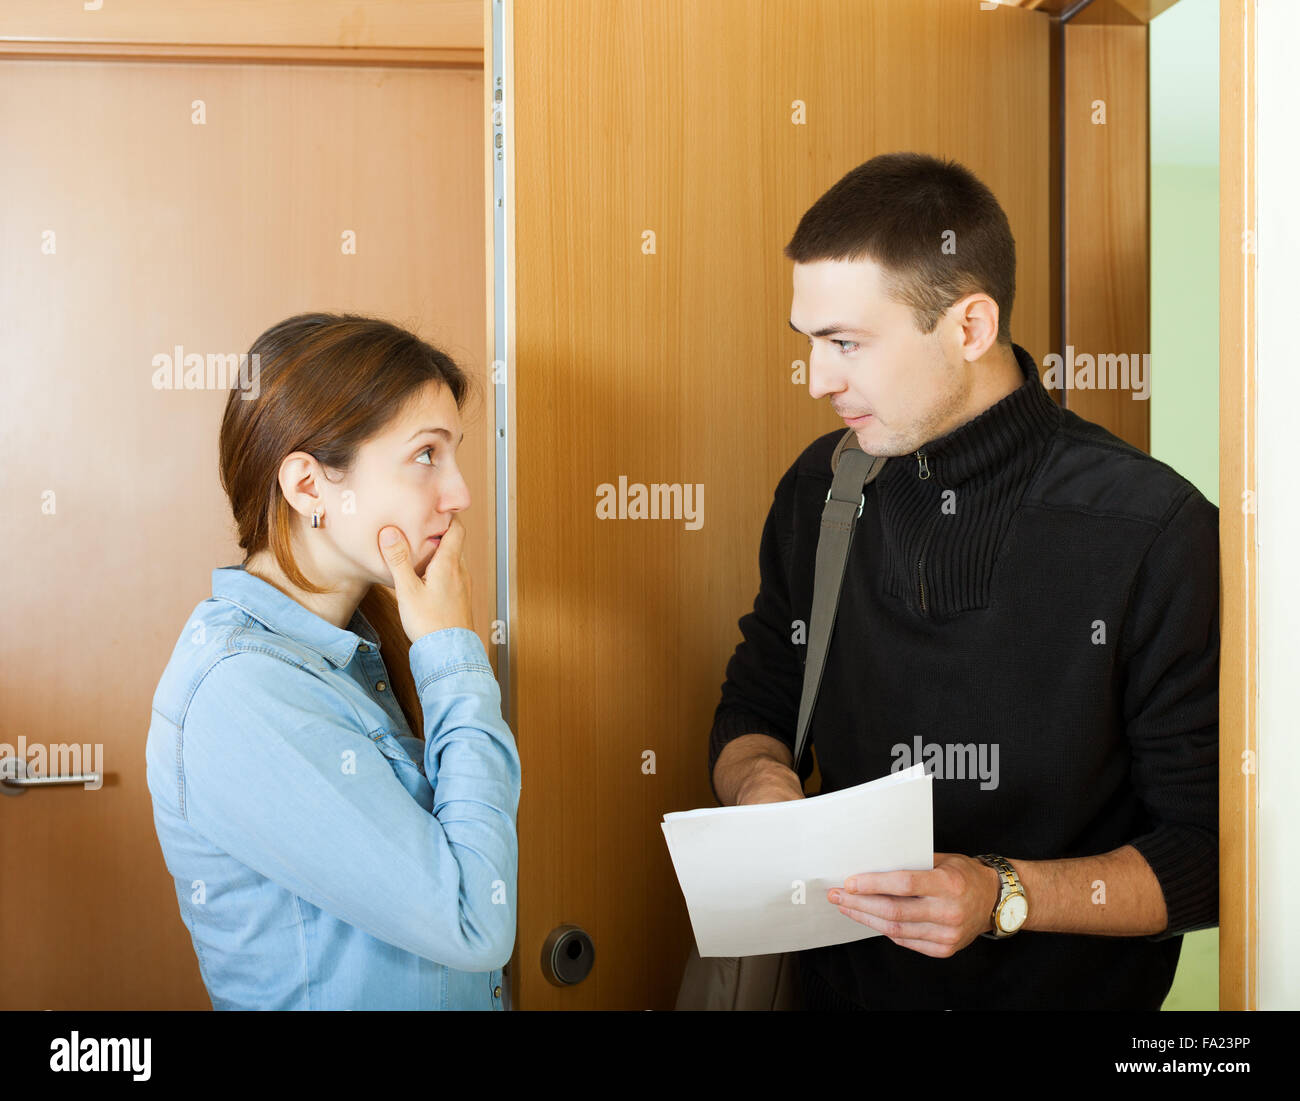 collector is trying to get the arrears from woman - Stock Image